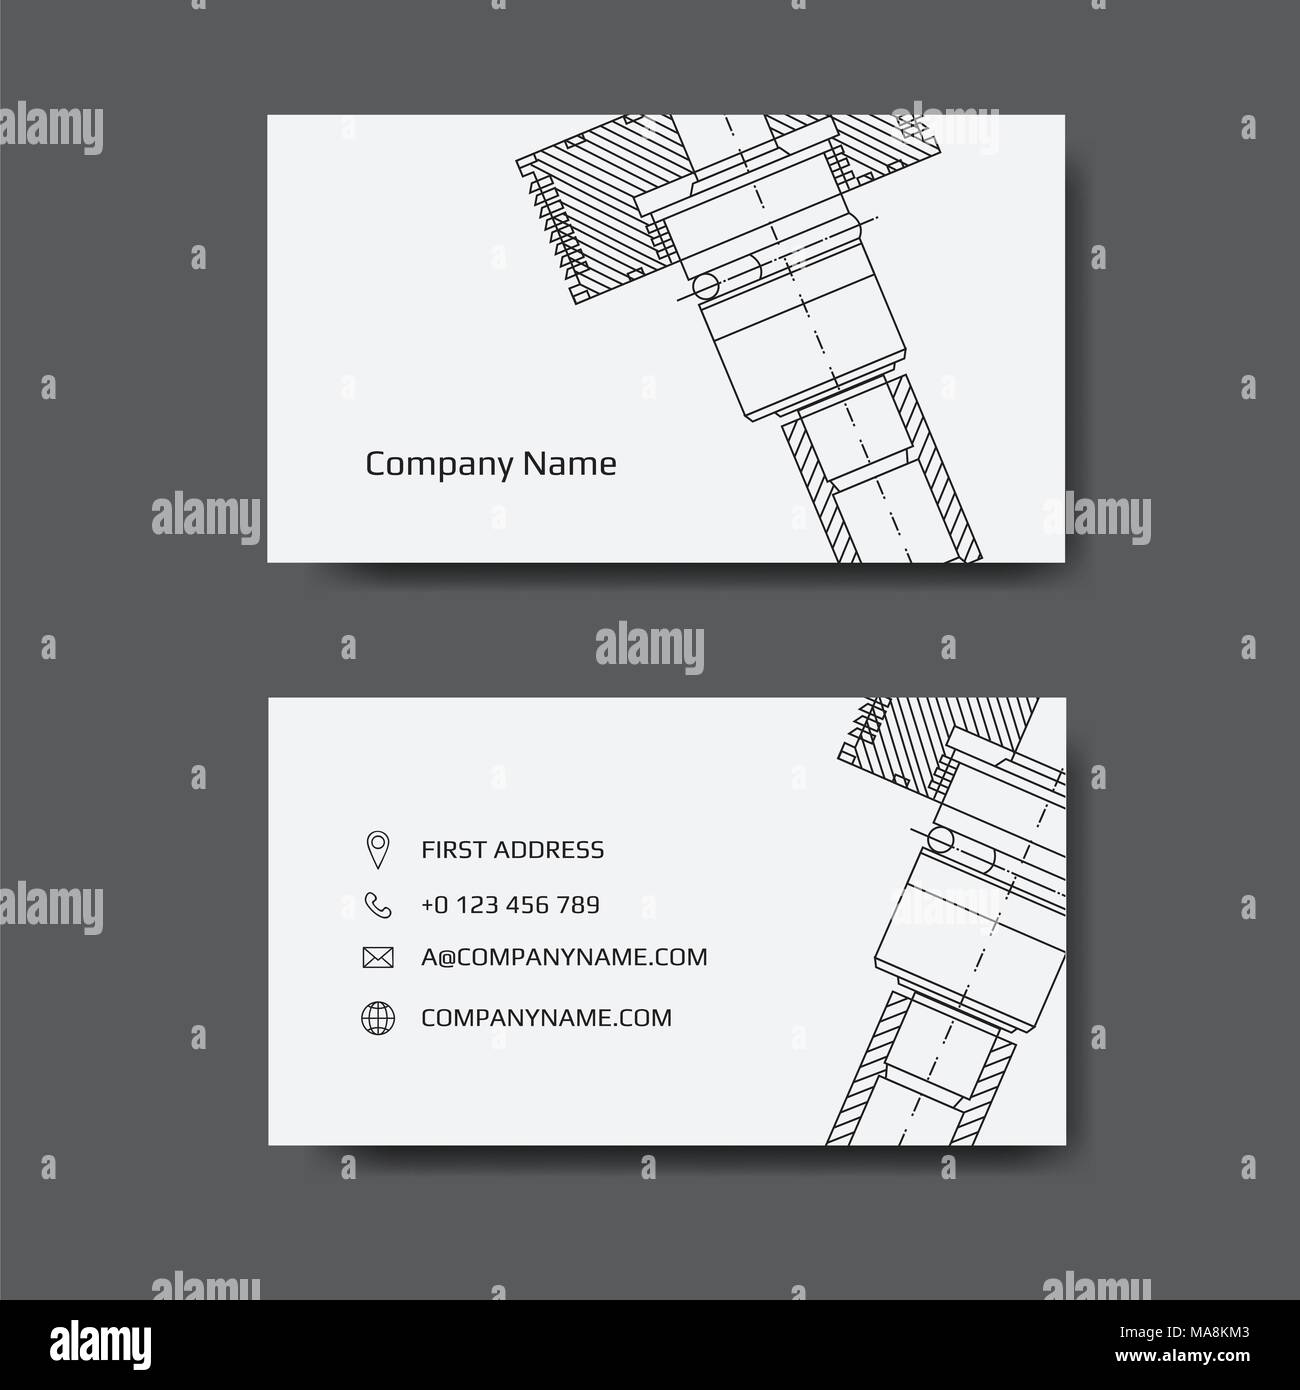 business card for engineer and Mechanical. Engineering business card ...